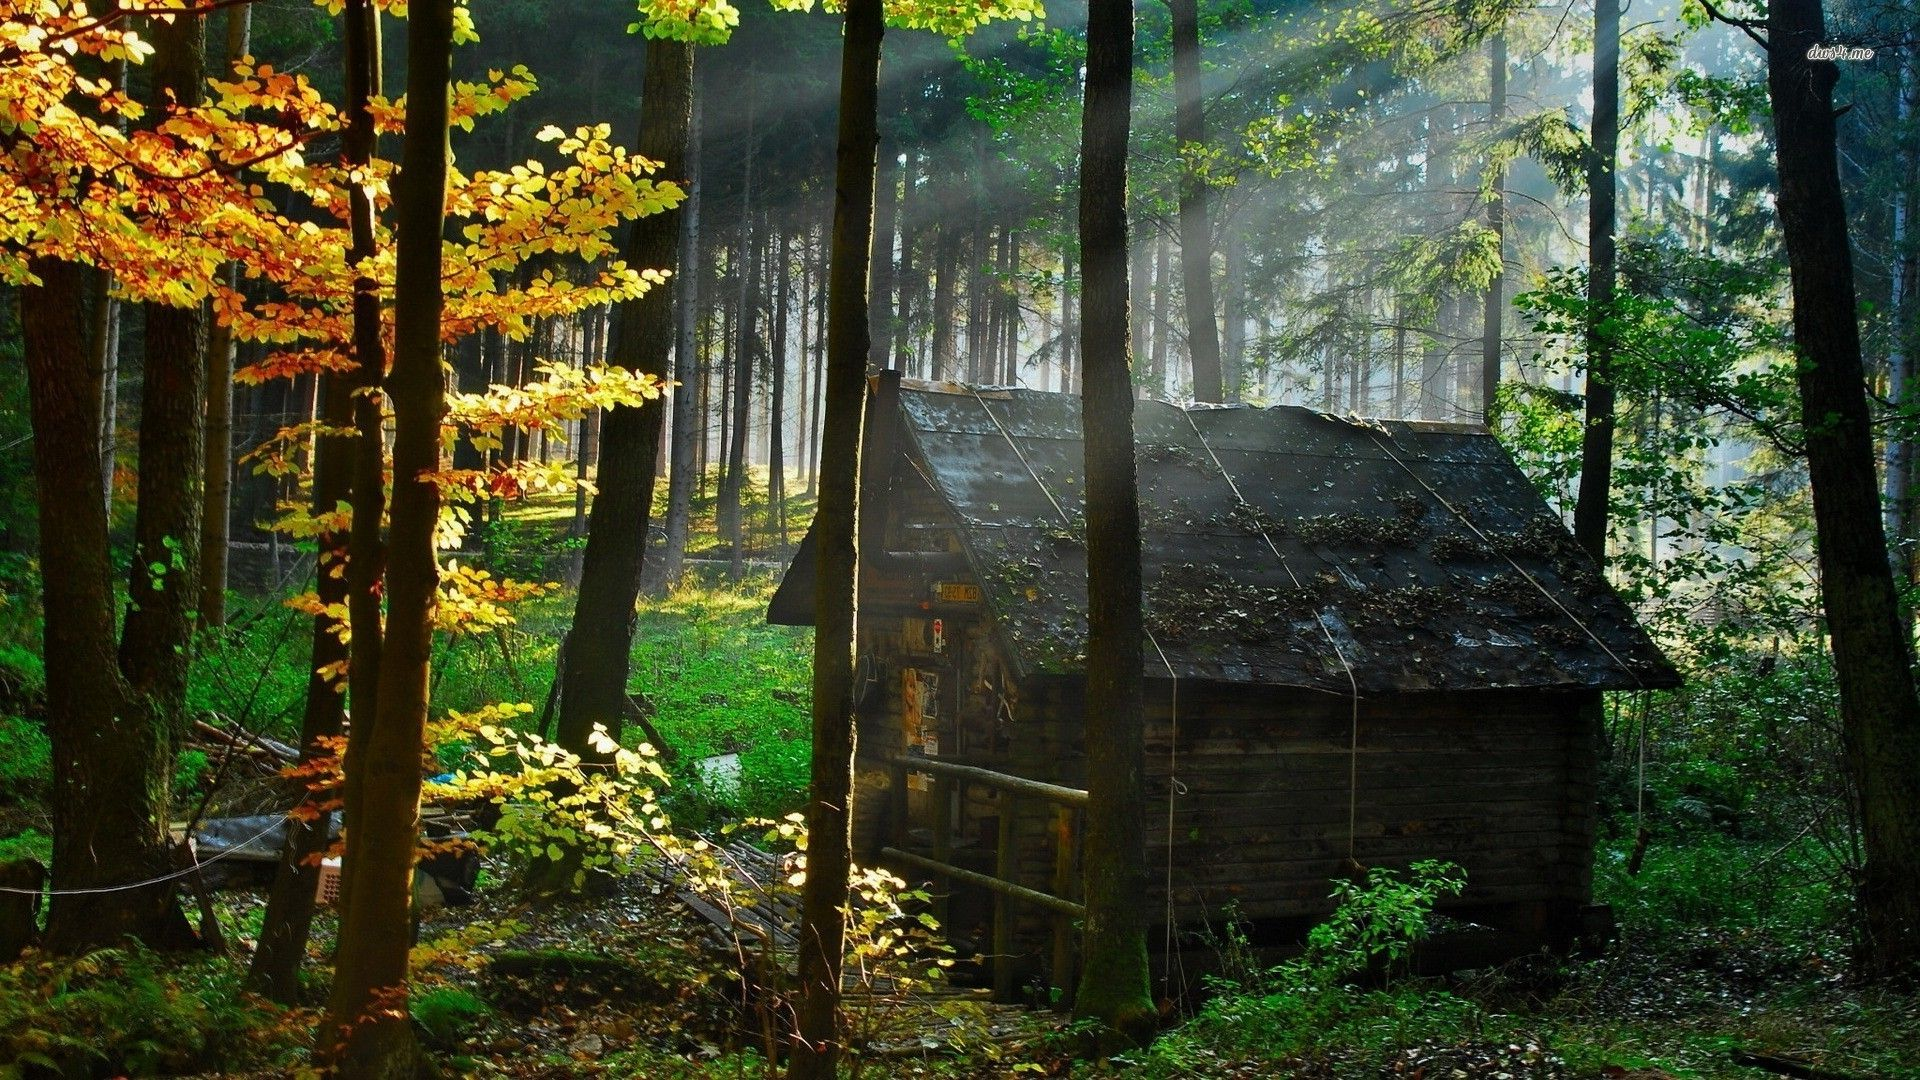 abandoned house wood - Google Search | Anime movie ...